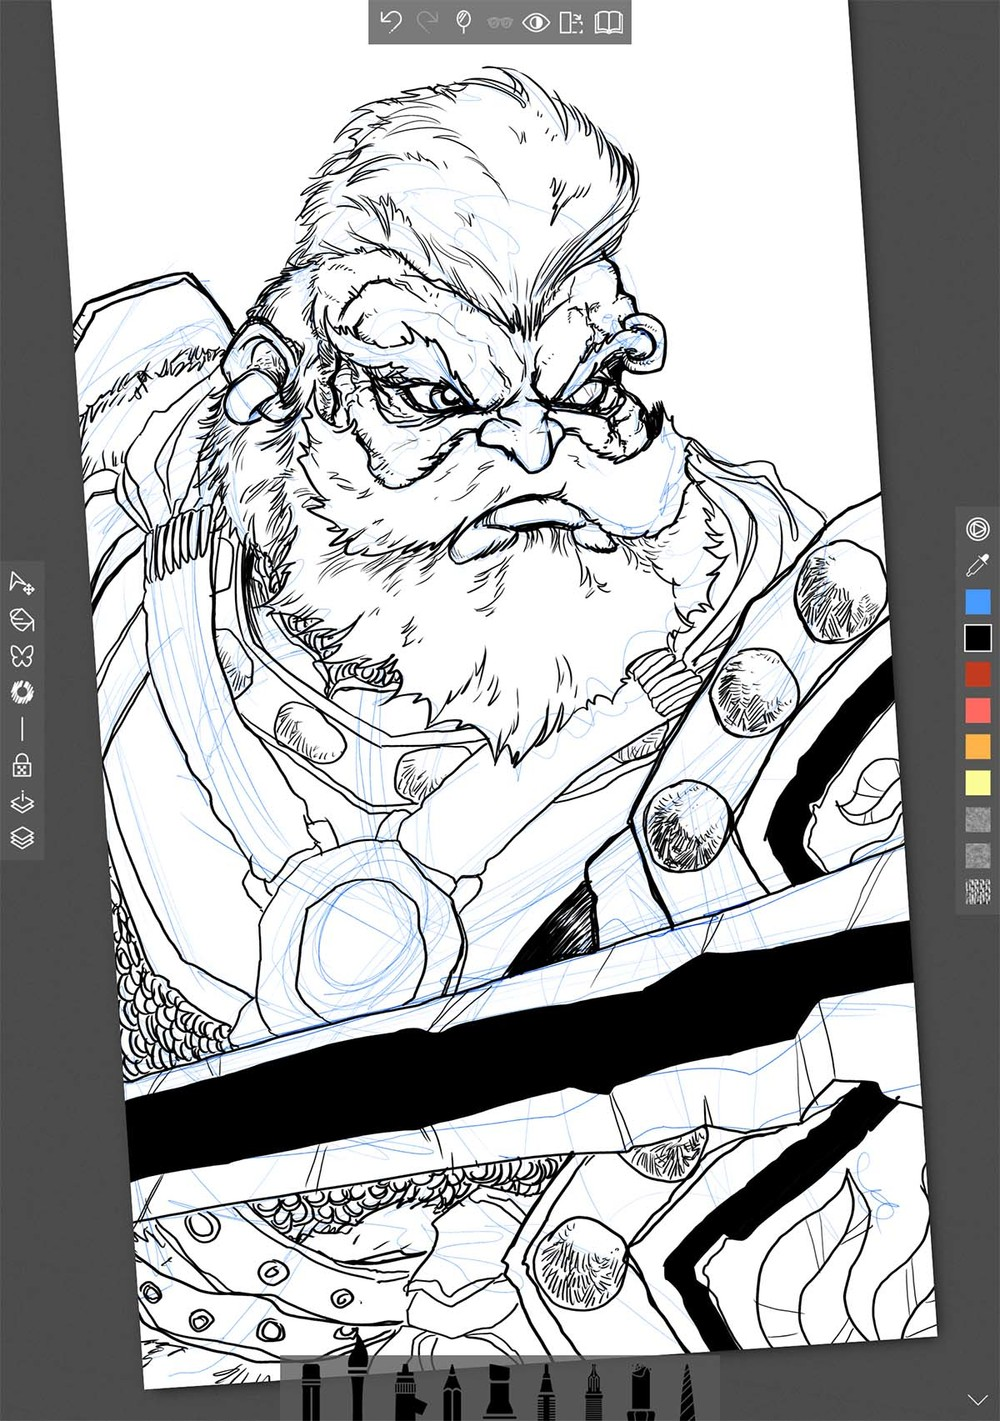 Sketchable inks and final colors by Luc Nguyen